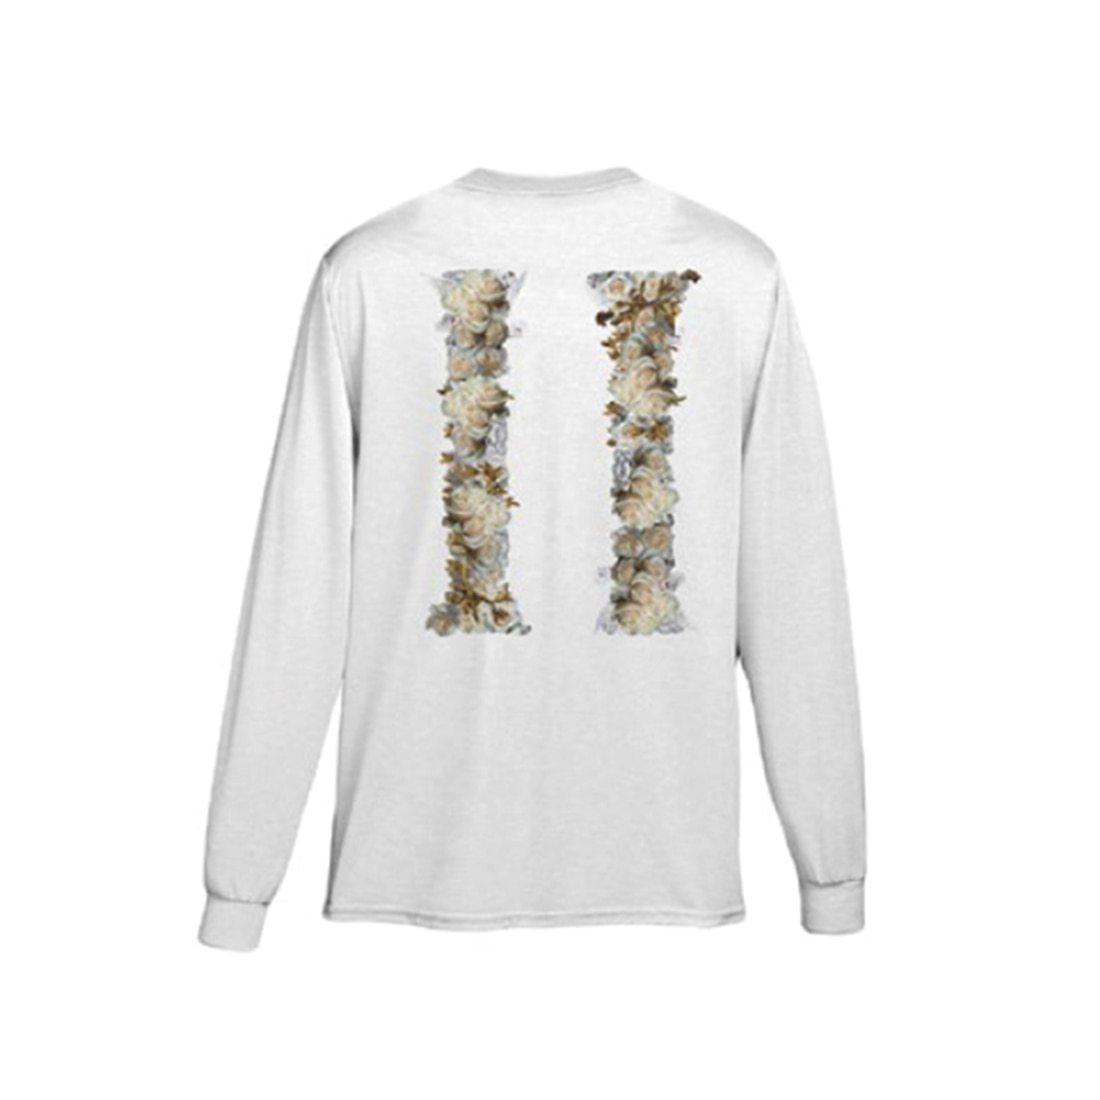 [Migos] CULTURE COLUMNS LONG SLEEVE WHITE